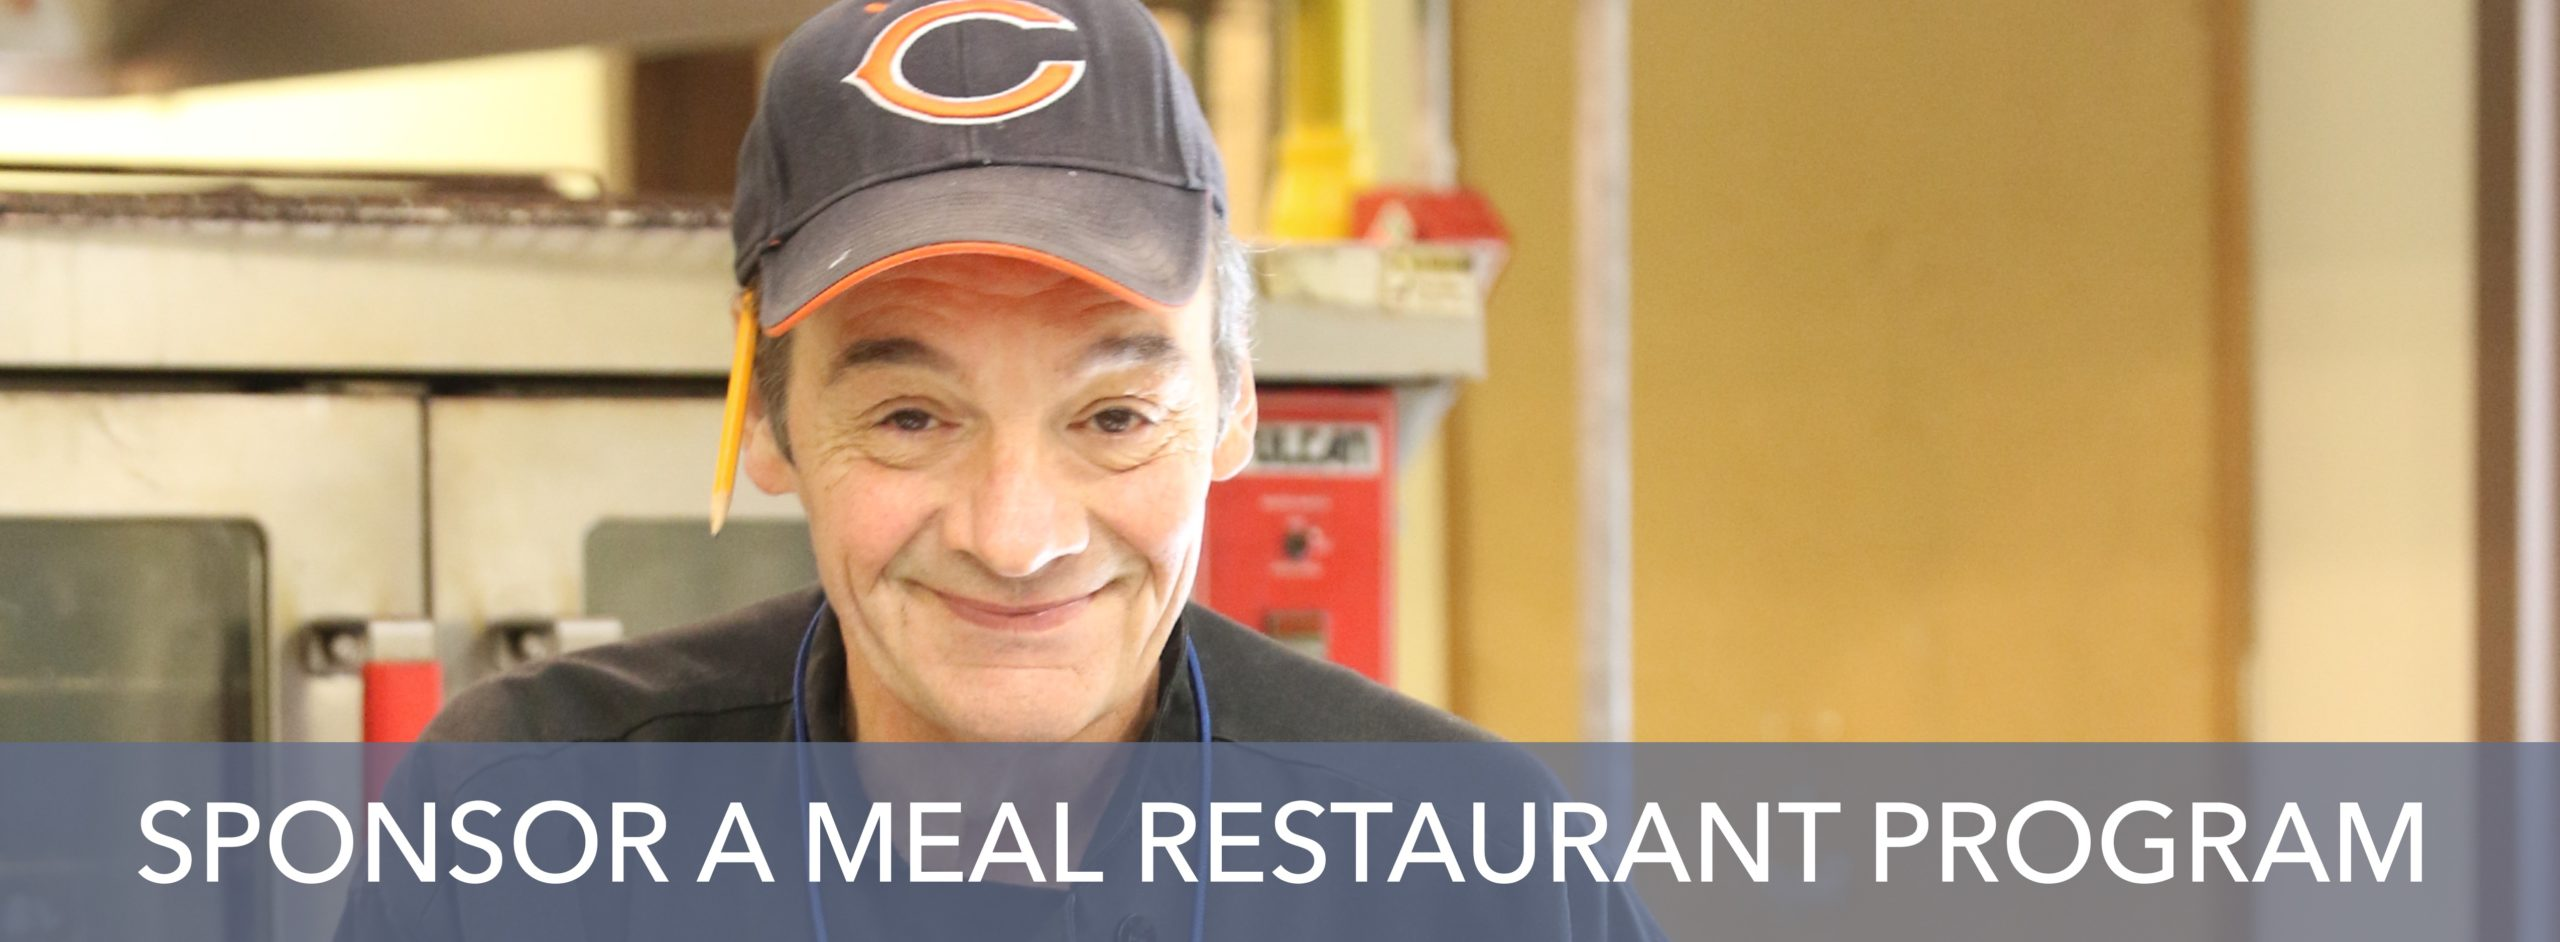 Sponsor a Meal Restaurant Program